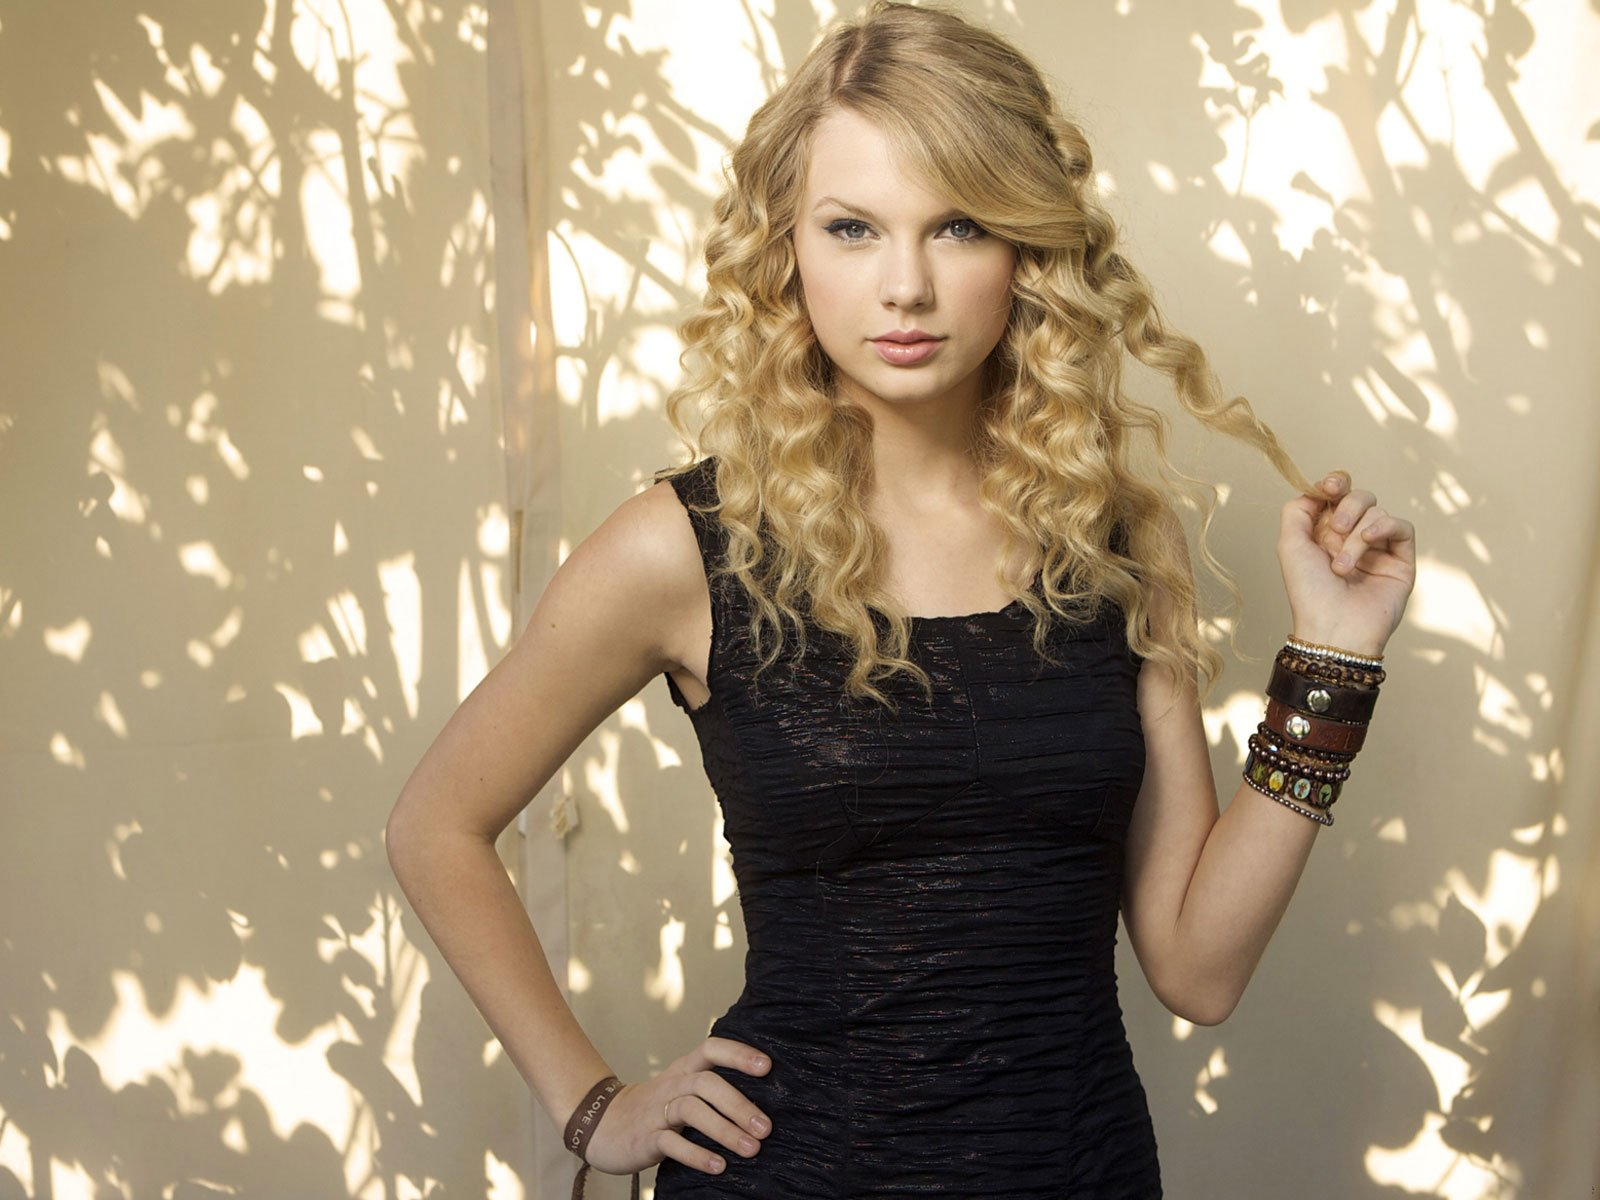 Taylor Swift Wallpapers HD Wallpapers 1600x1200